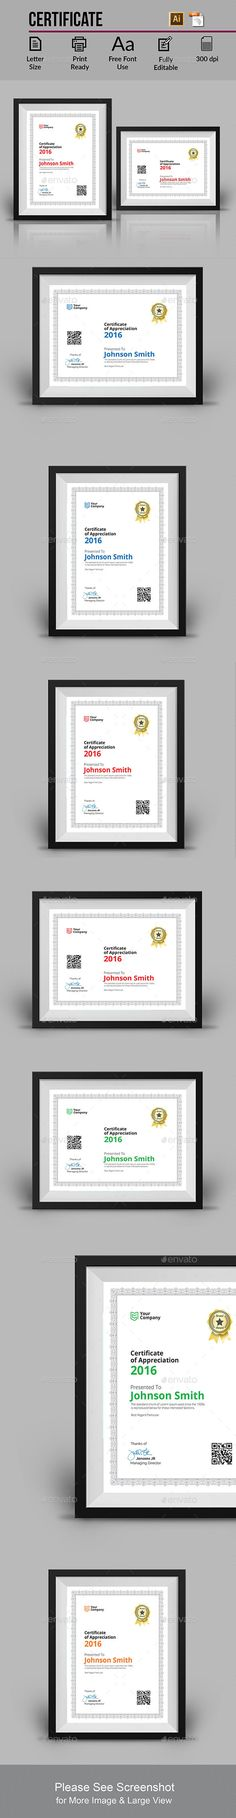 Certificate #Template - Certificates Stationery Download here - certificate template download